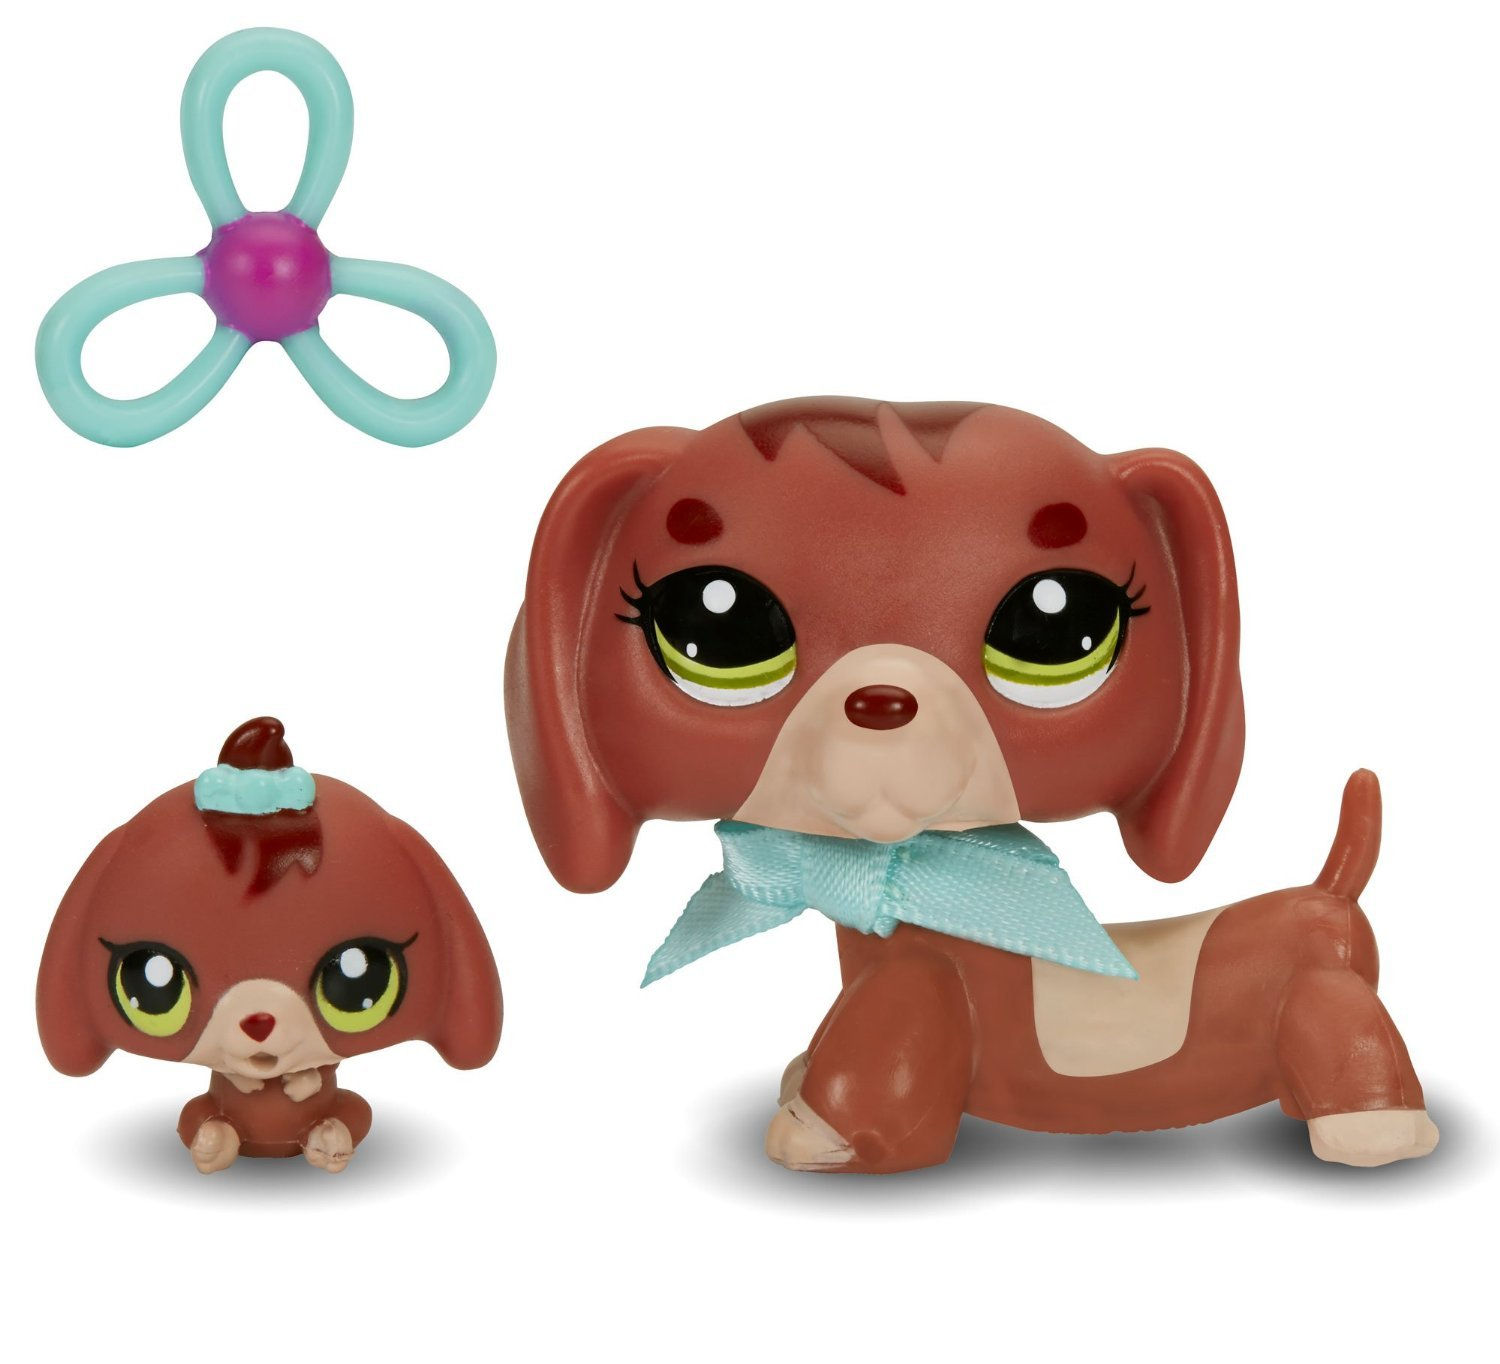 Littlest Pet Shop Wiener Dogs Littlest Pet Shop Figures